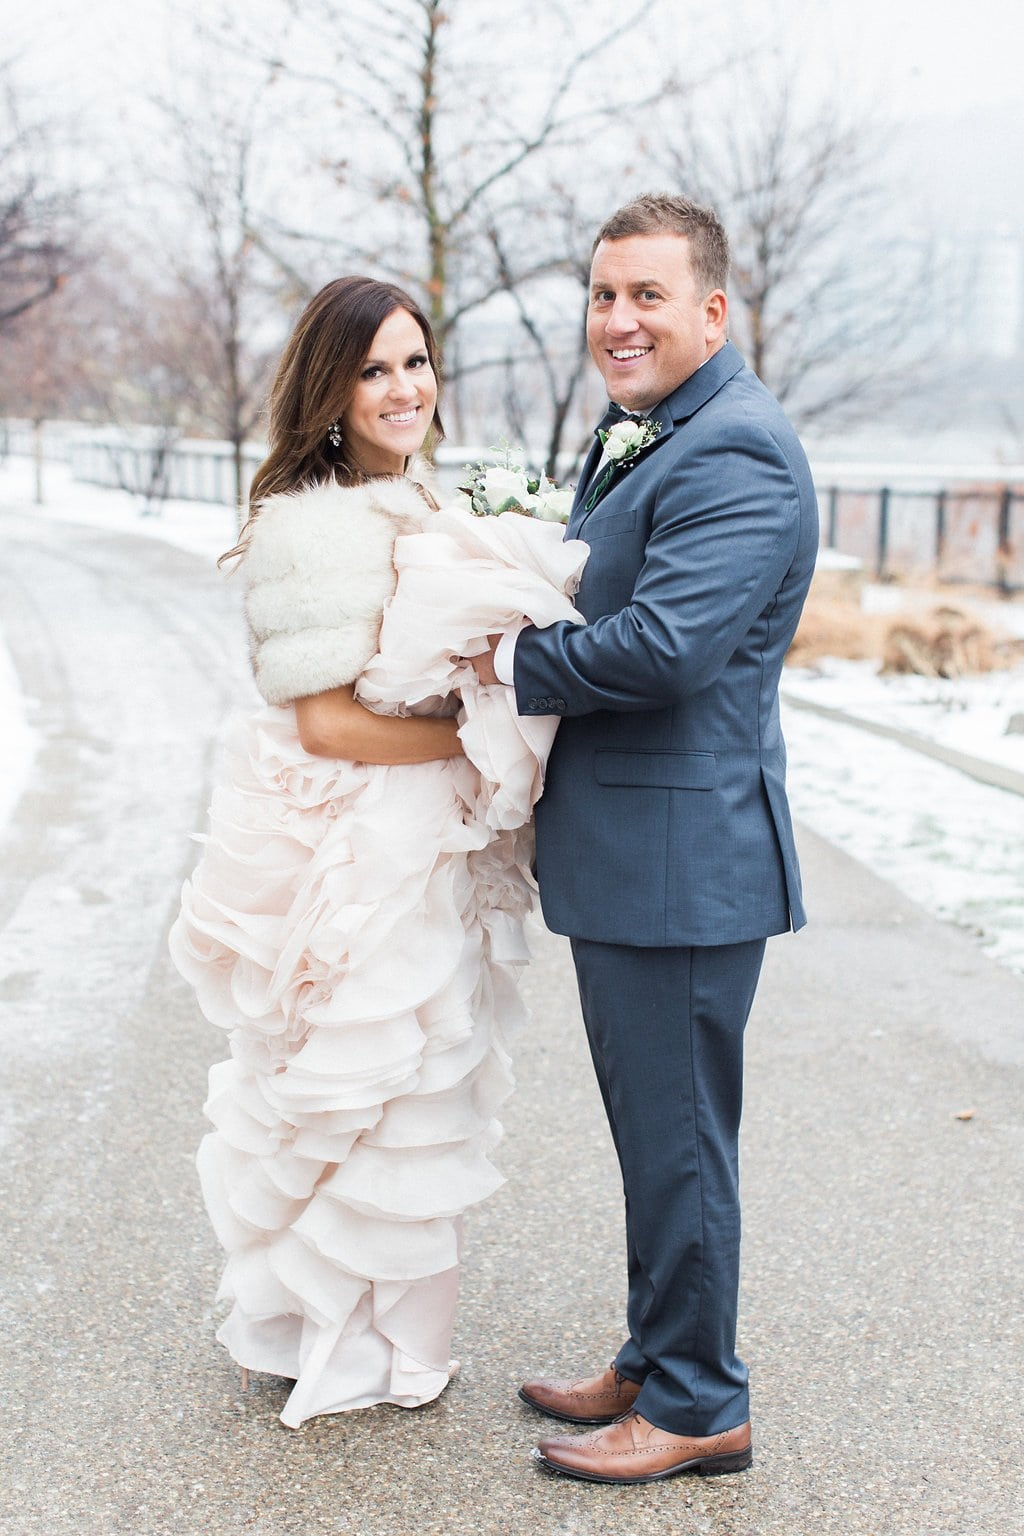 Portrait of the groom holding the bride's dress in the snow